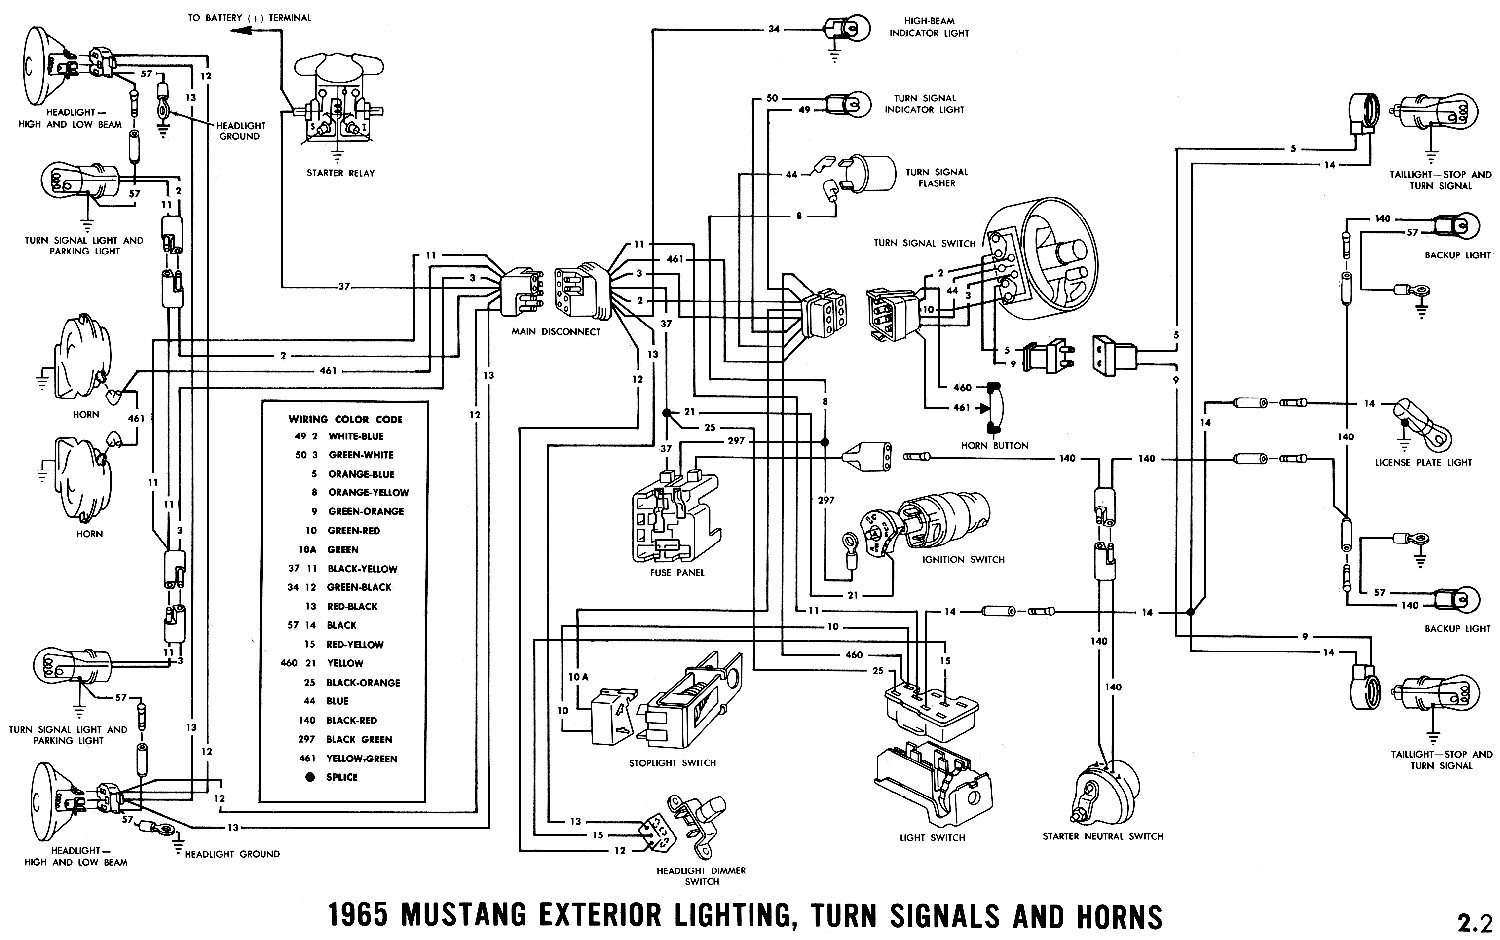 1970 Mustang 302 Alternator Wiring Diagram Complete Diagrams Ford Bronco Harness Online Rh Tentenny Com 1972 F 150 Trailer